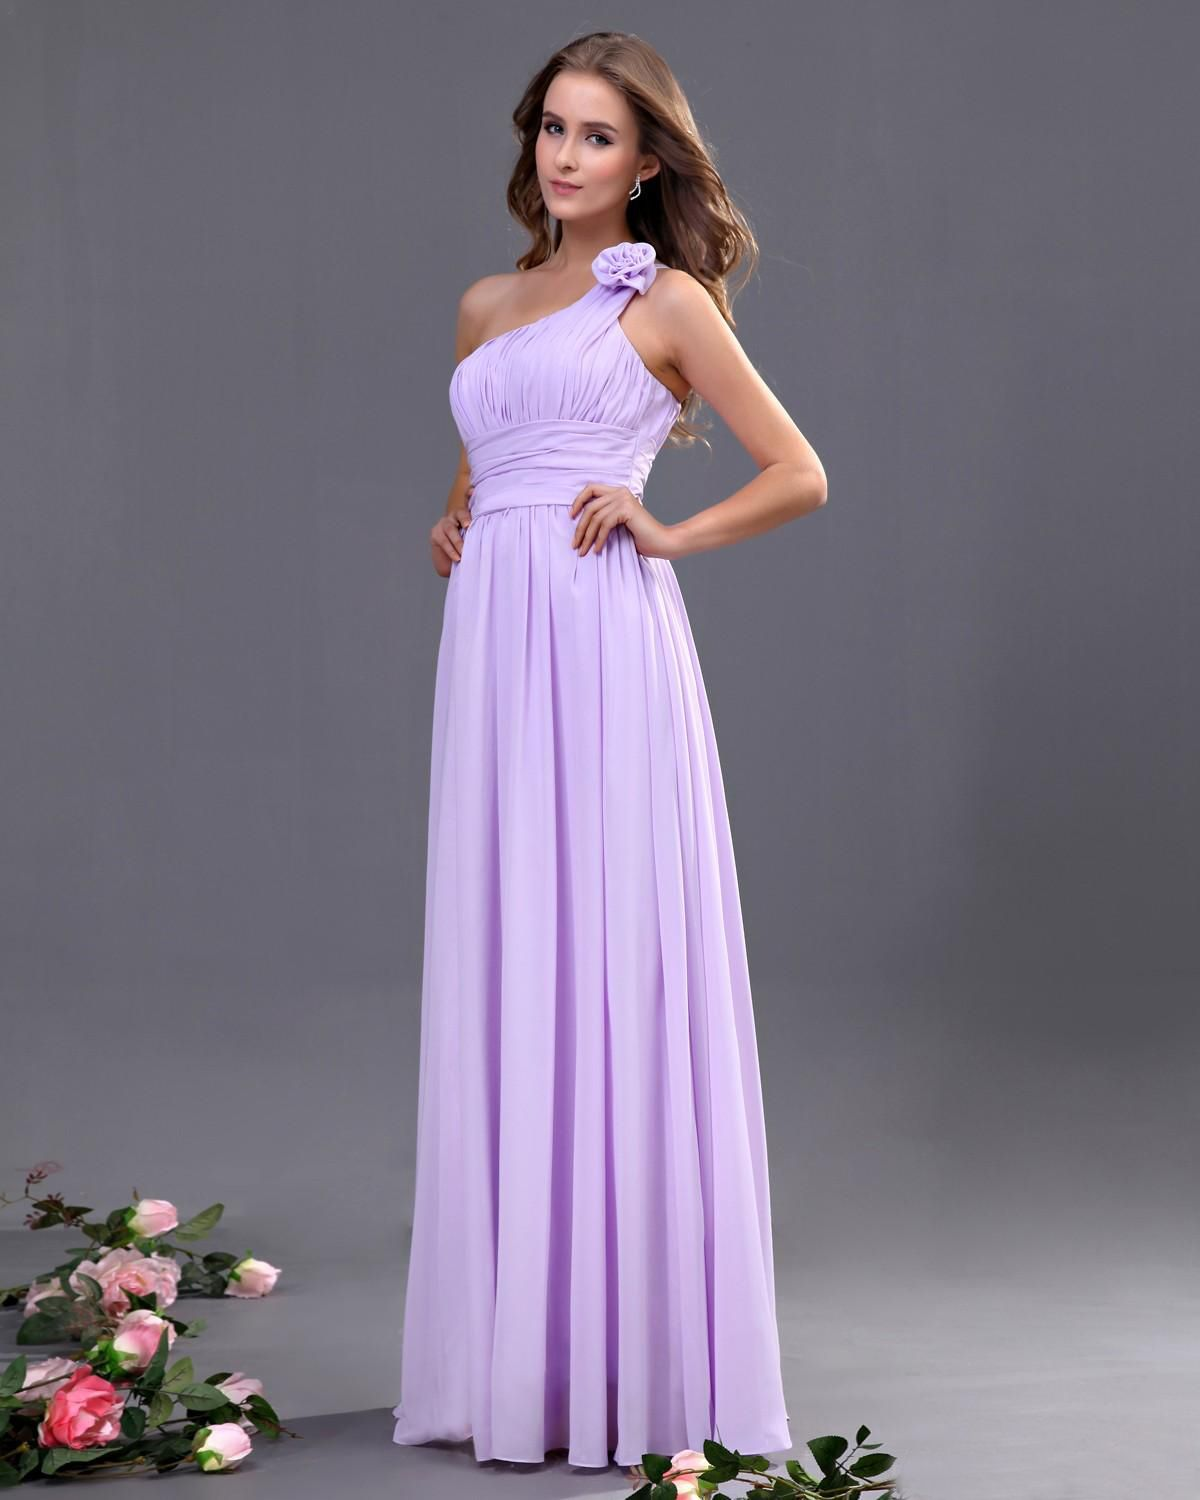 One Shoulder Chiffon Floor Length A-line Bridesmaid Dress | My ...